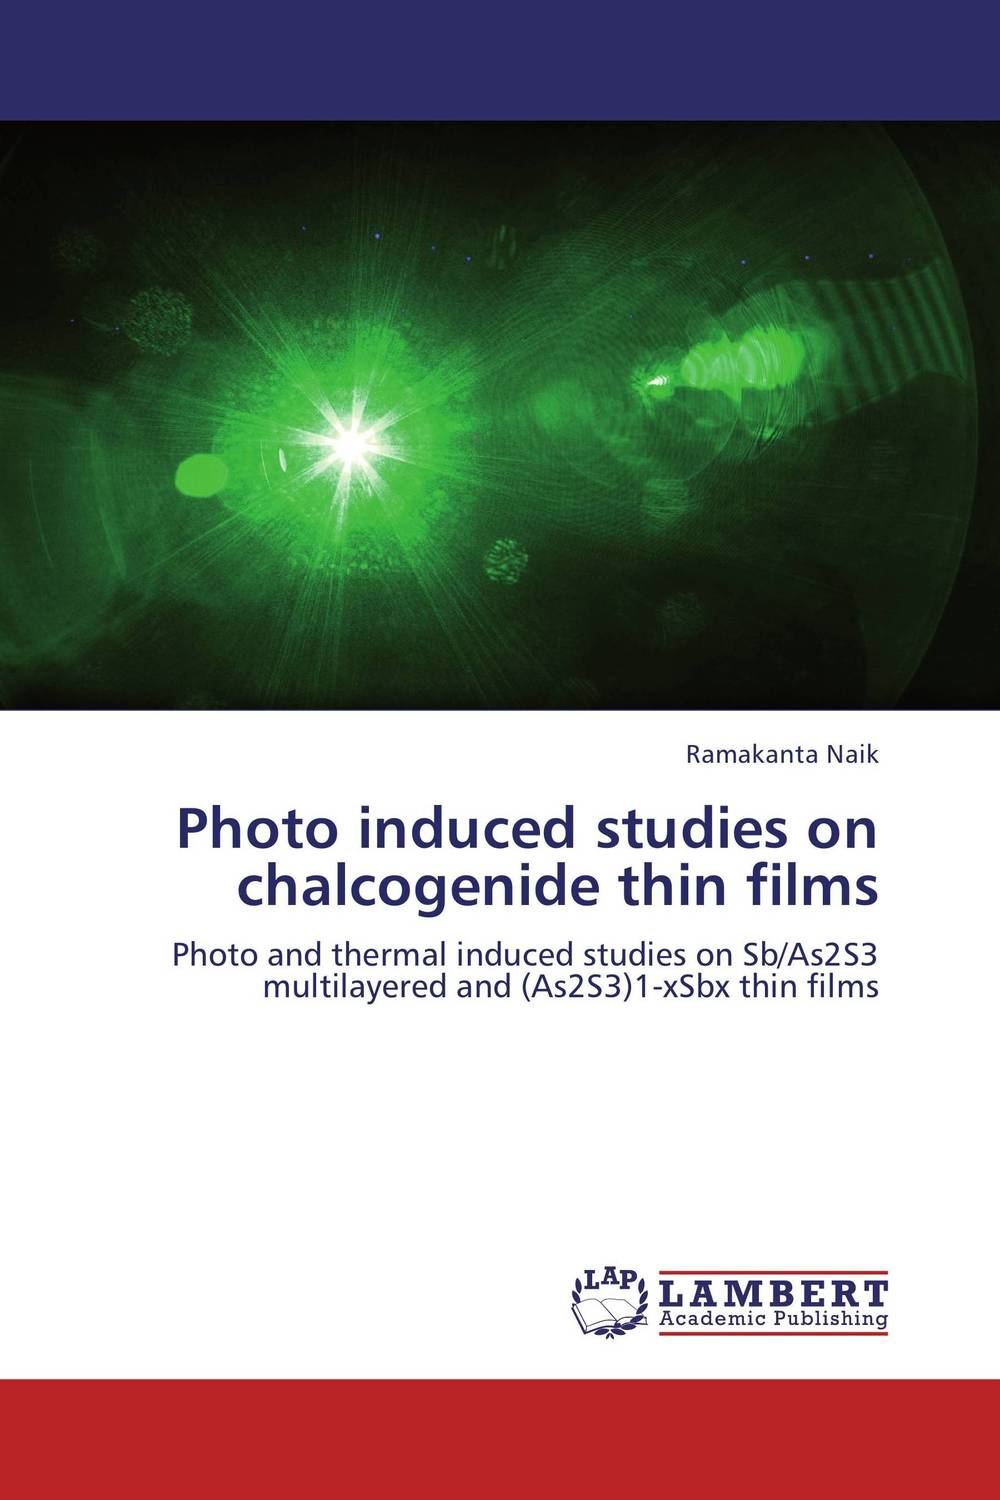 Photo induced studies on chalcogenide thin films study of point defects in solids and thin films